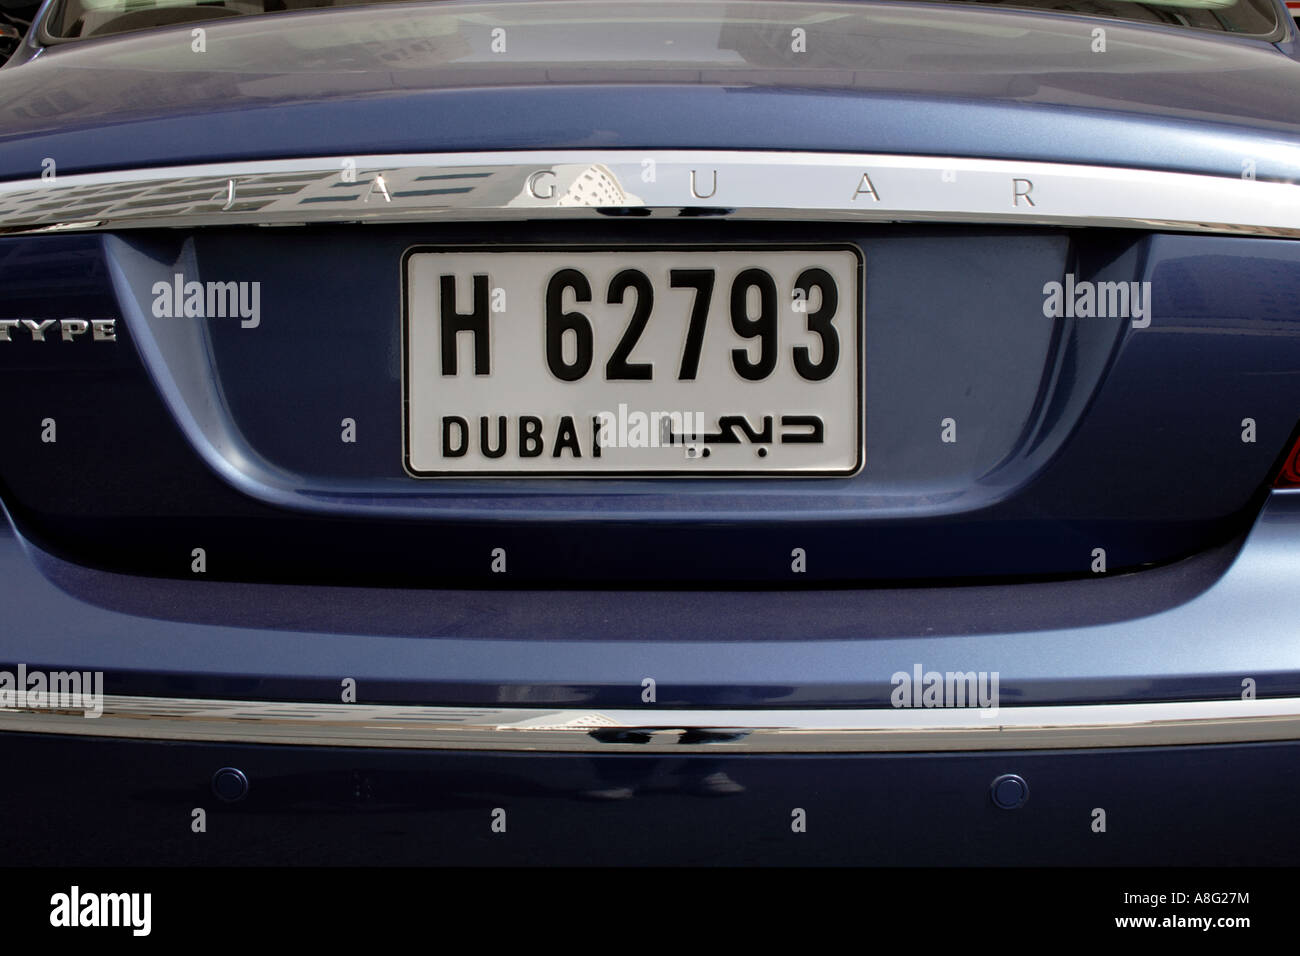 dubai license plate photos dubai license plate images alamy. Black Bedroom Furniture Sets. Home Design Ideas